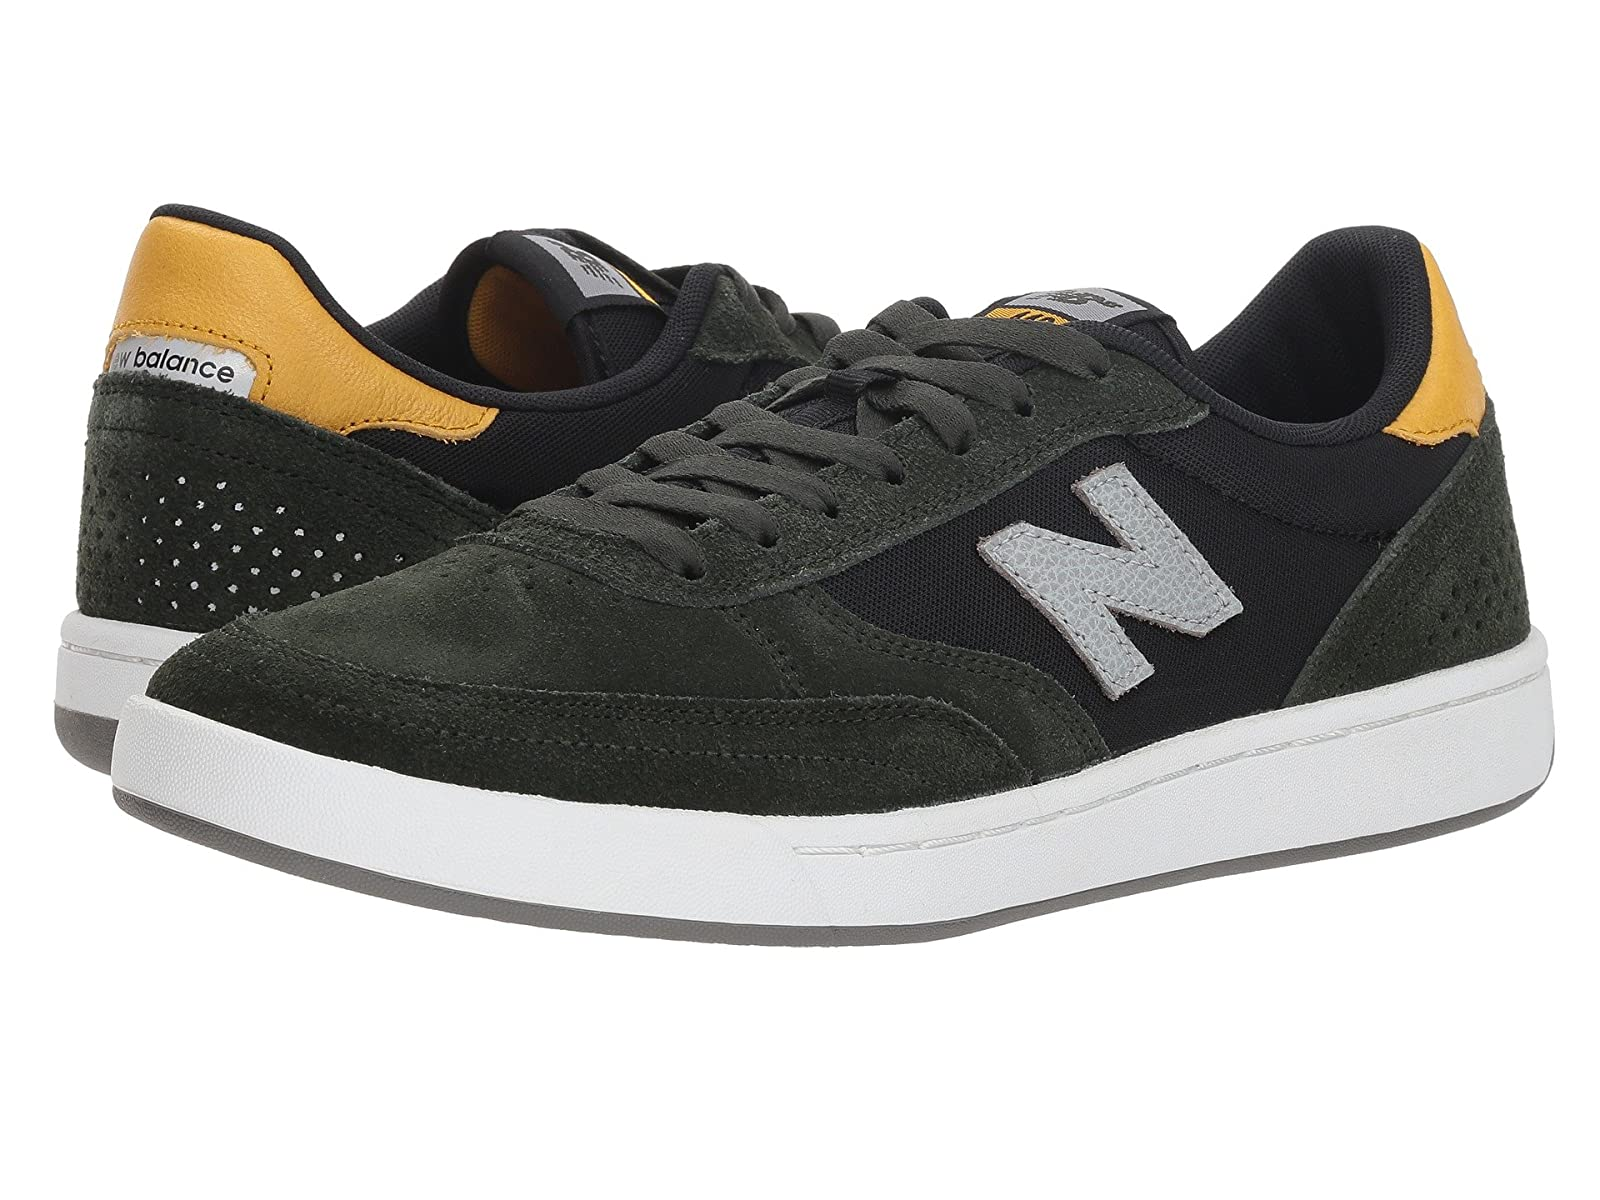 New Balance Numeric NM440Atmospheric grades have affordable shoes